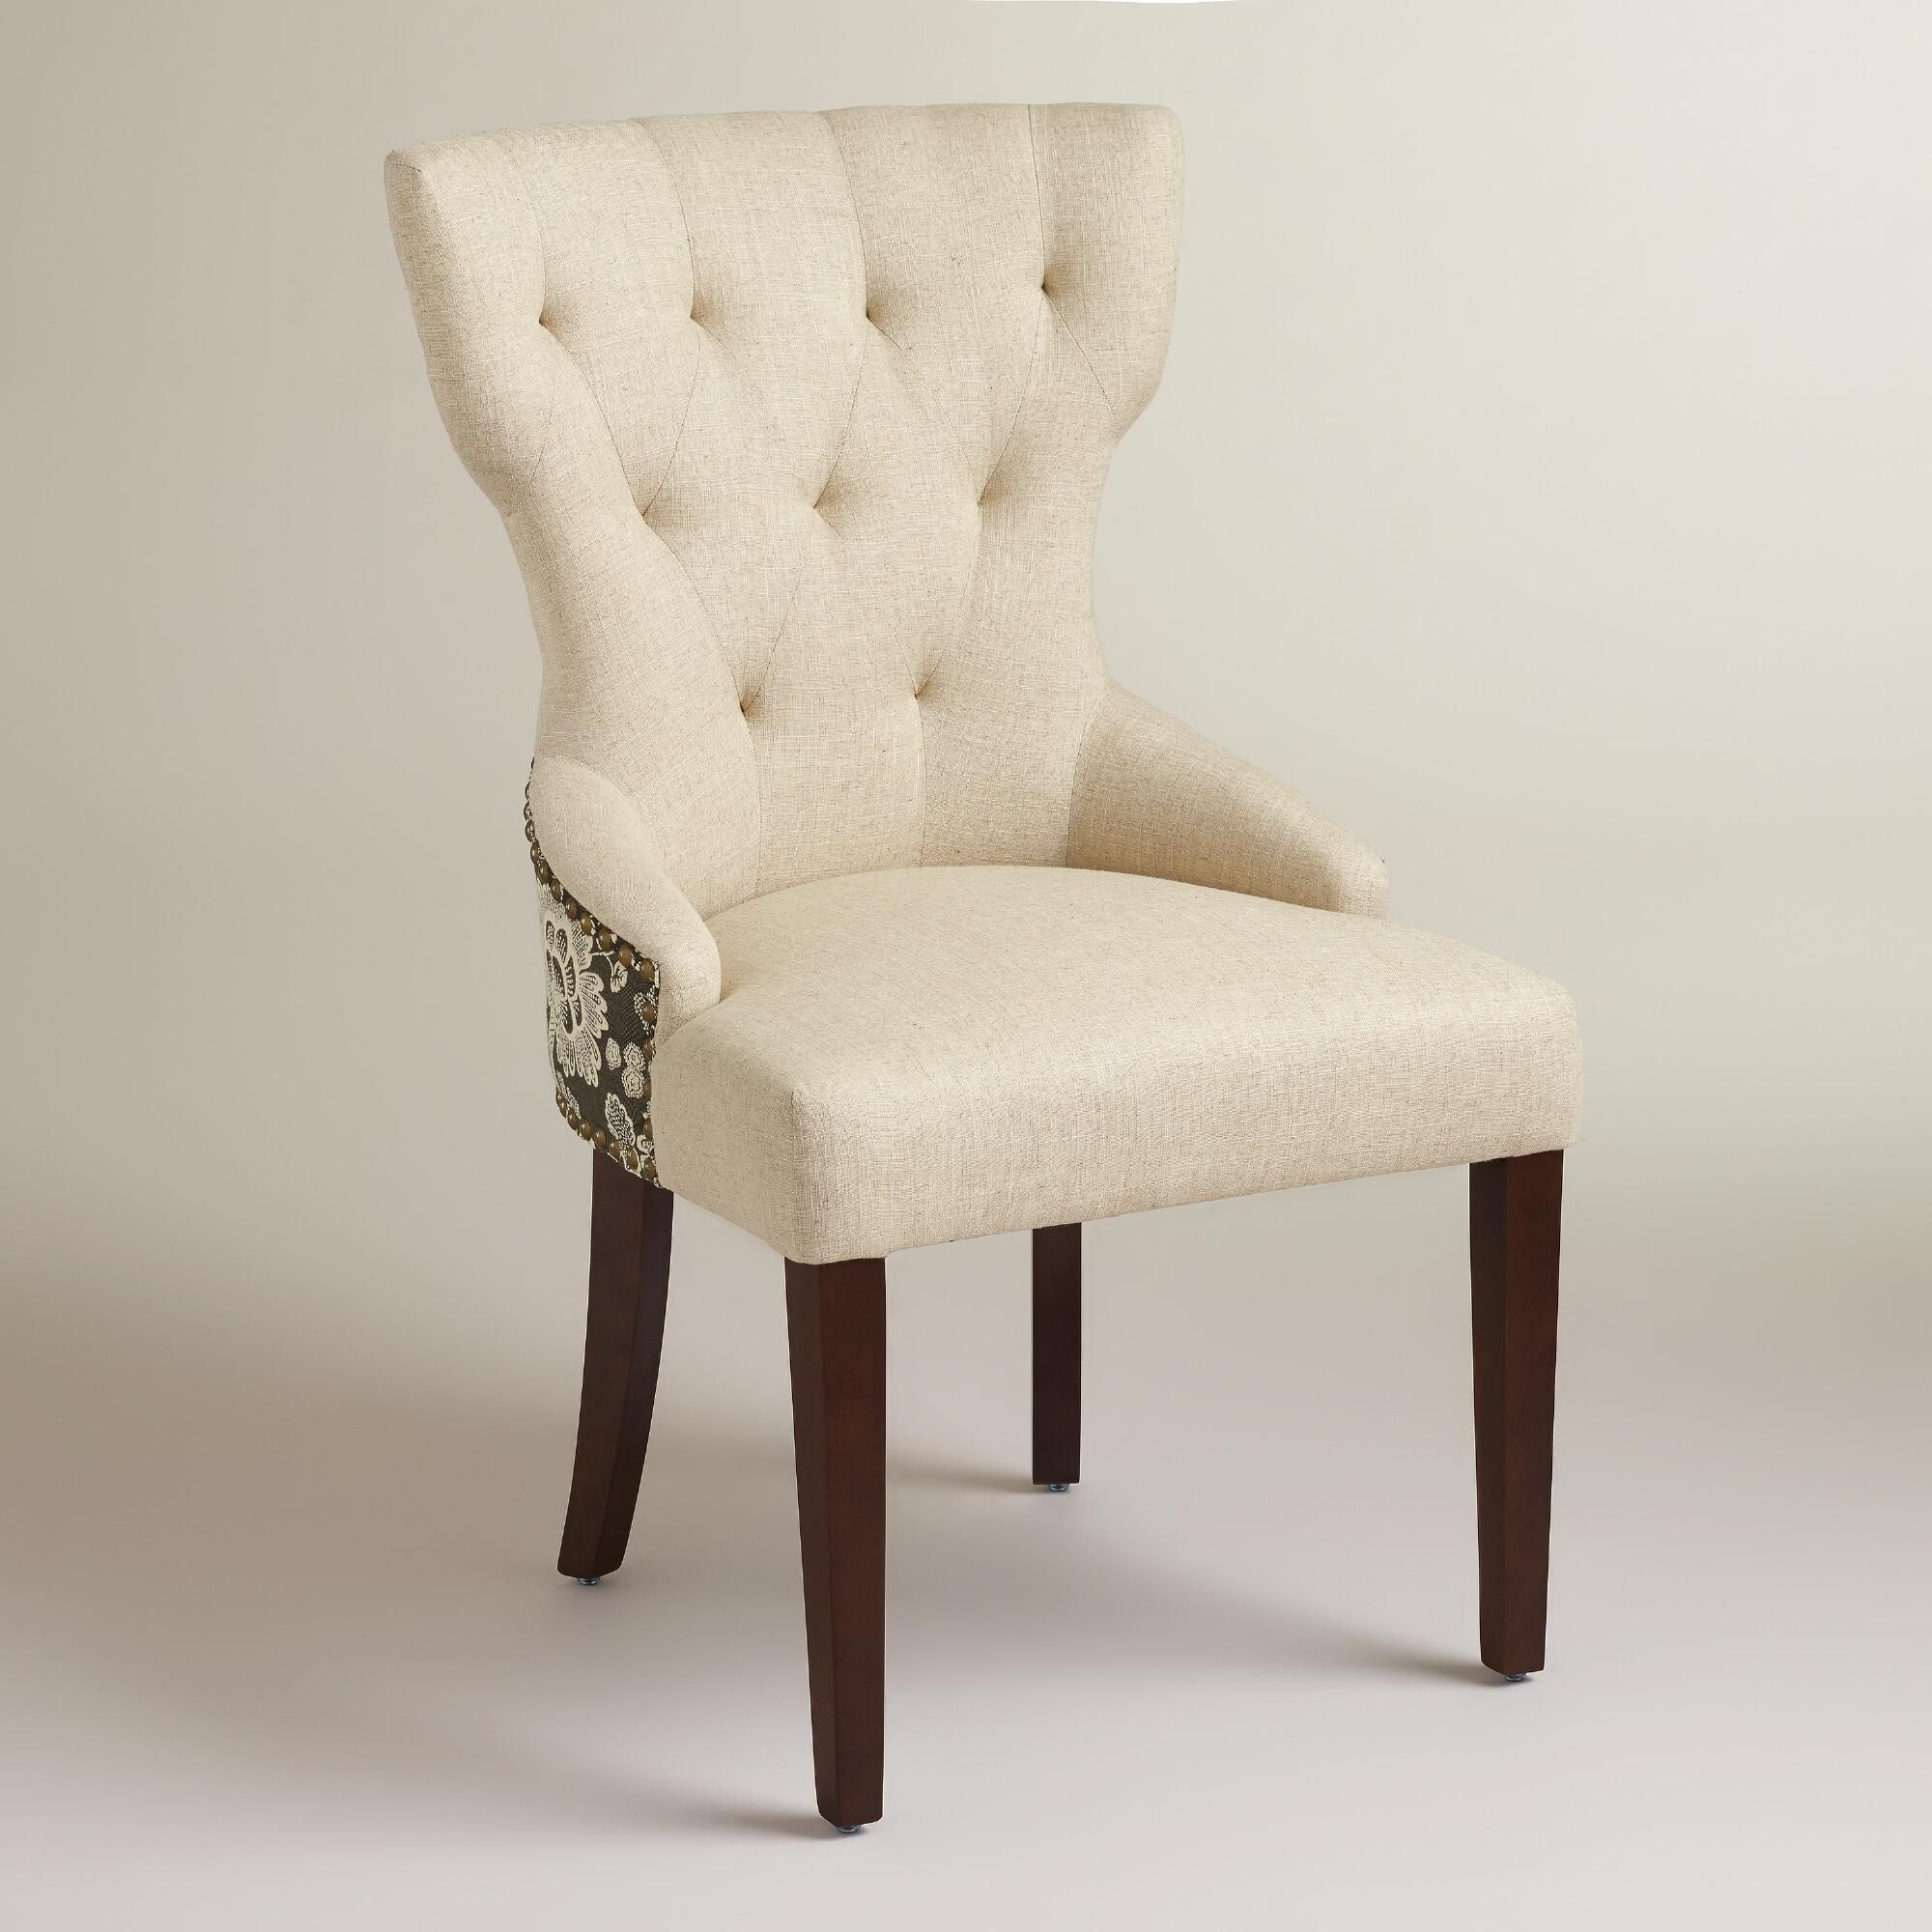 Black Floral and Linen Maxine Dining Chair Upholstery  : 9f6ddc8e5af6db651da960ae39a0e24f from www.pinterest.com size 2000 x 2000 jpeg 299kB